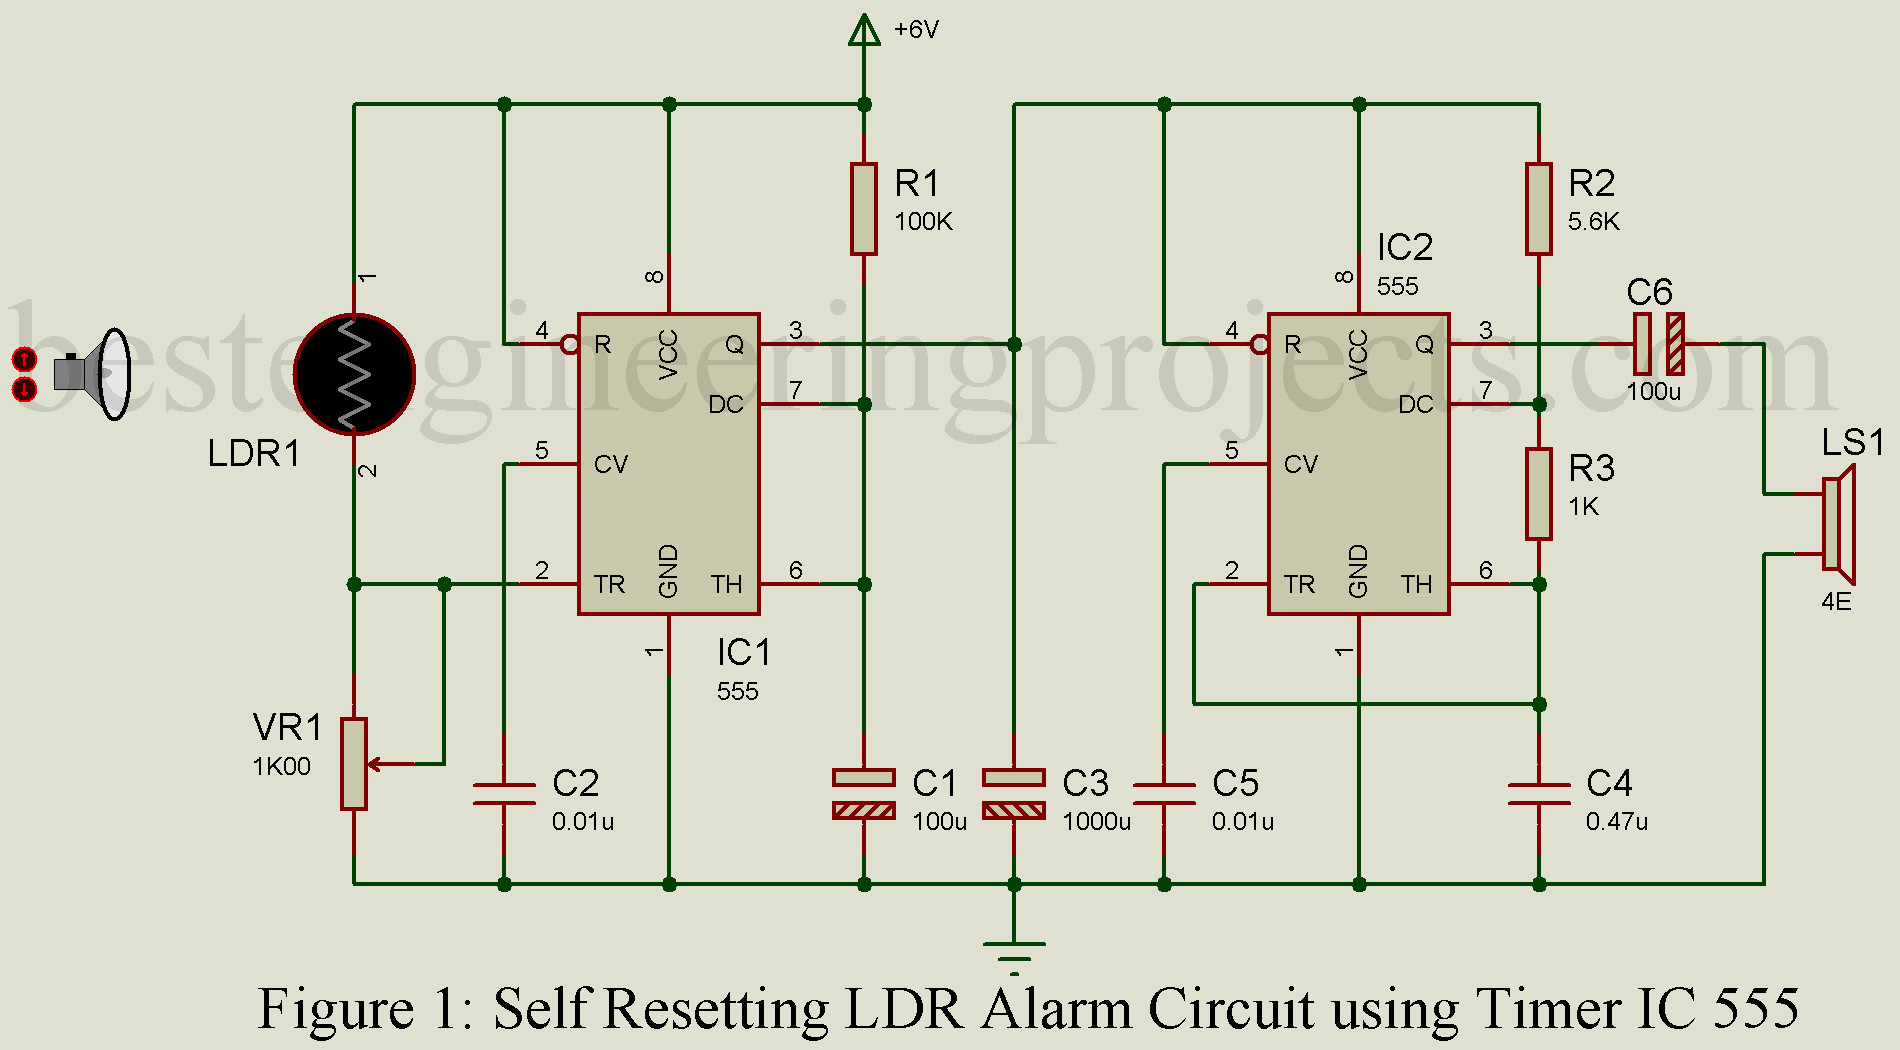 Self Resetting LDR Alarm using Timer IC 555 - Best Engineering Projects